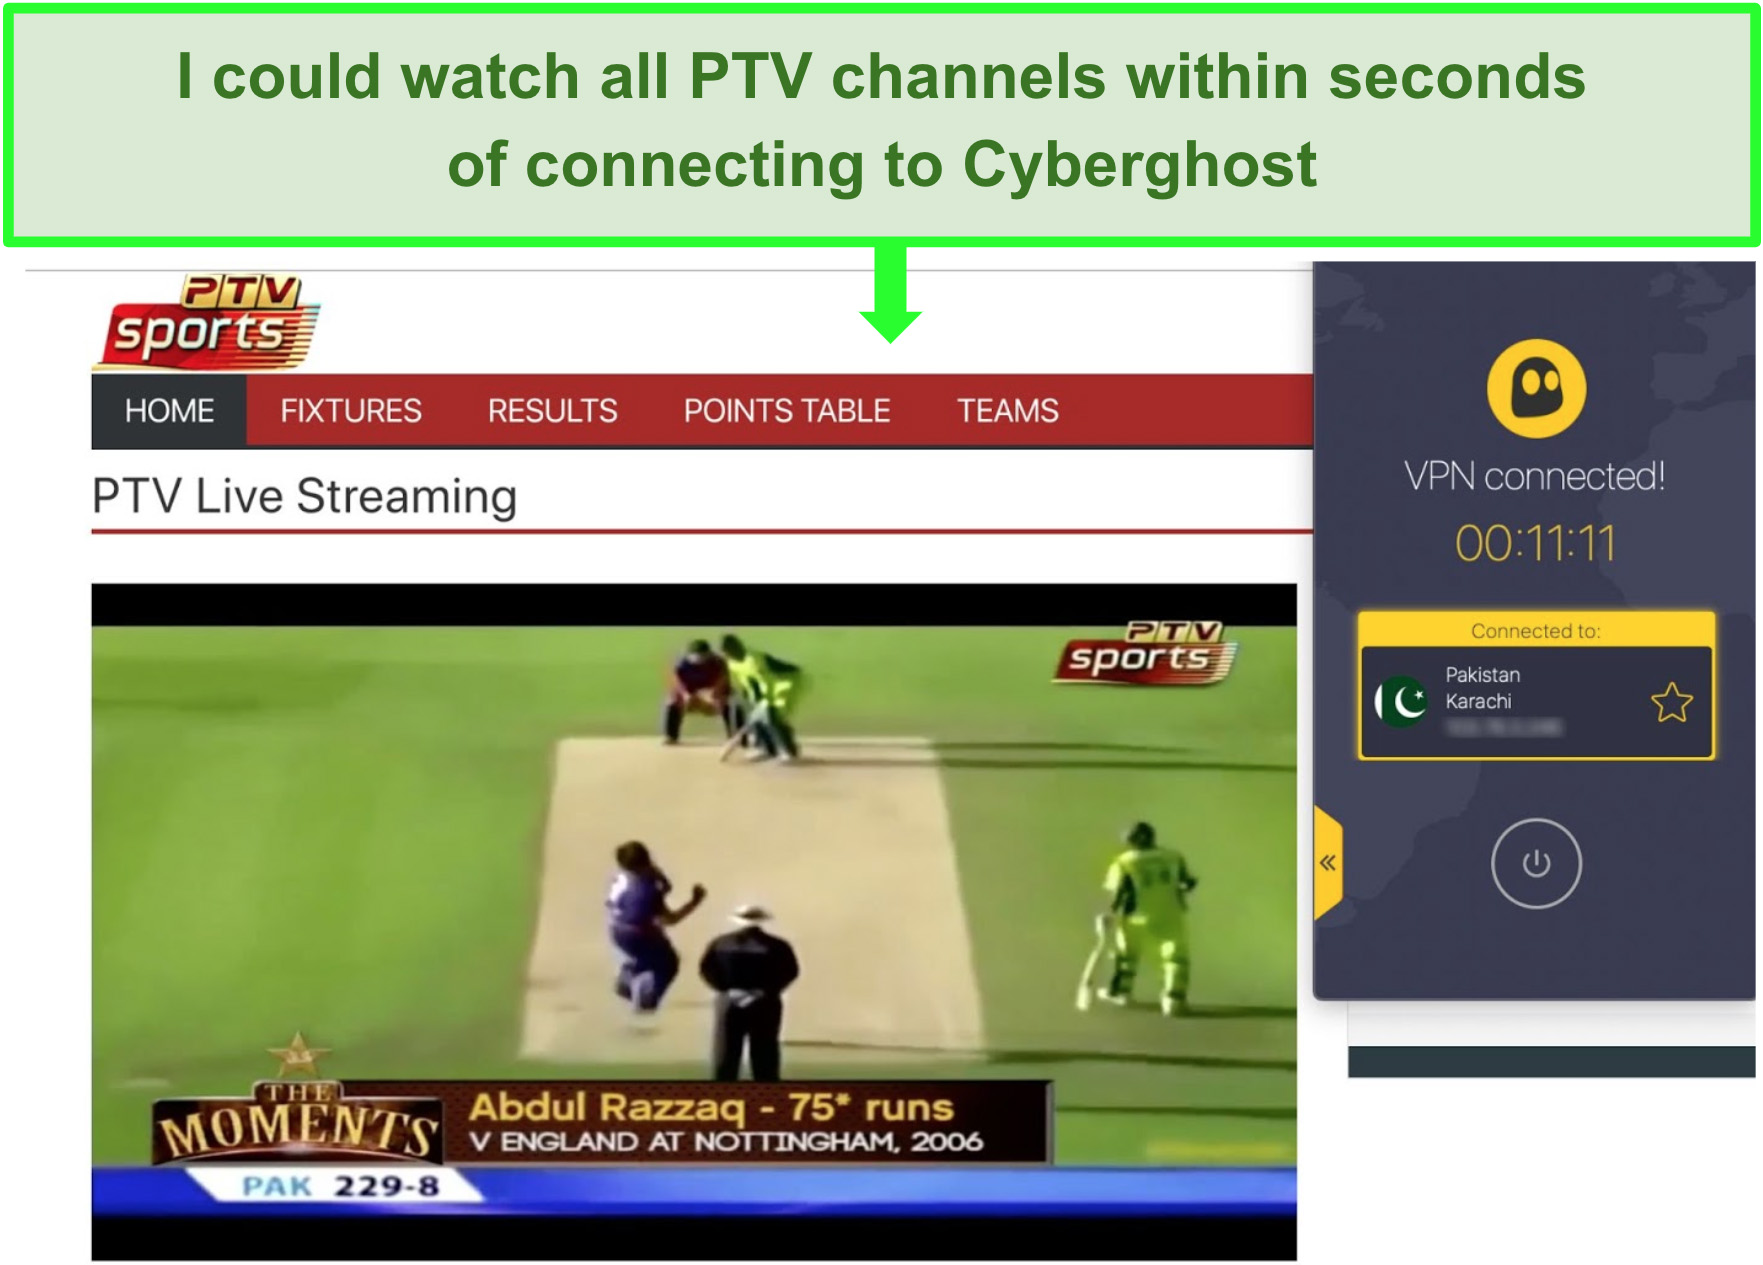 Screenshot of a cricket match playing on PTV Sports with CyberGhost VPN connected.